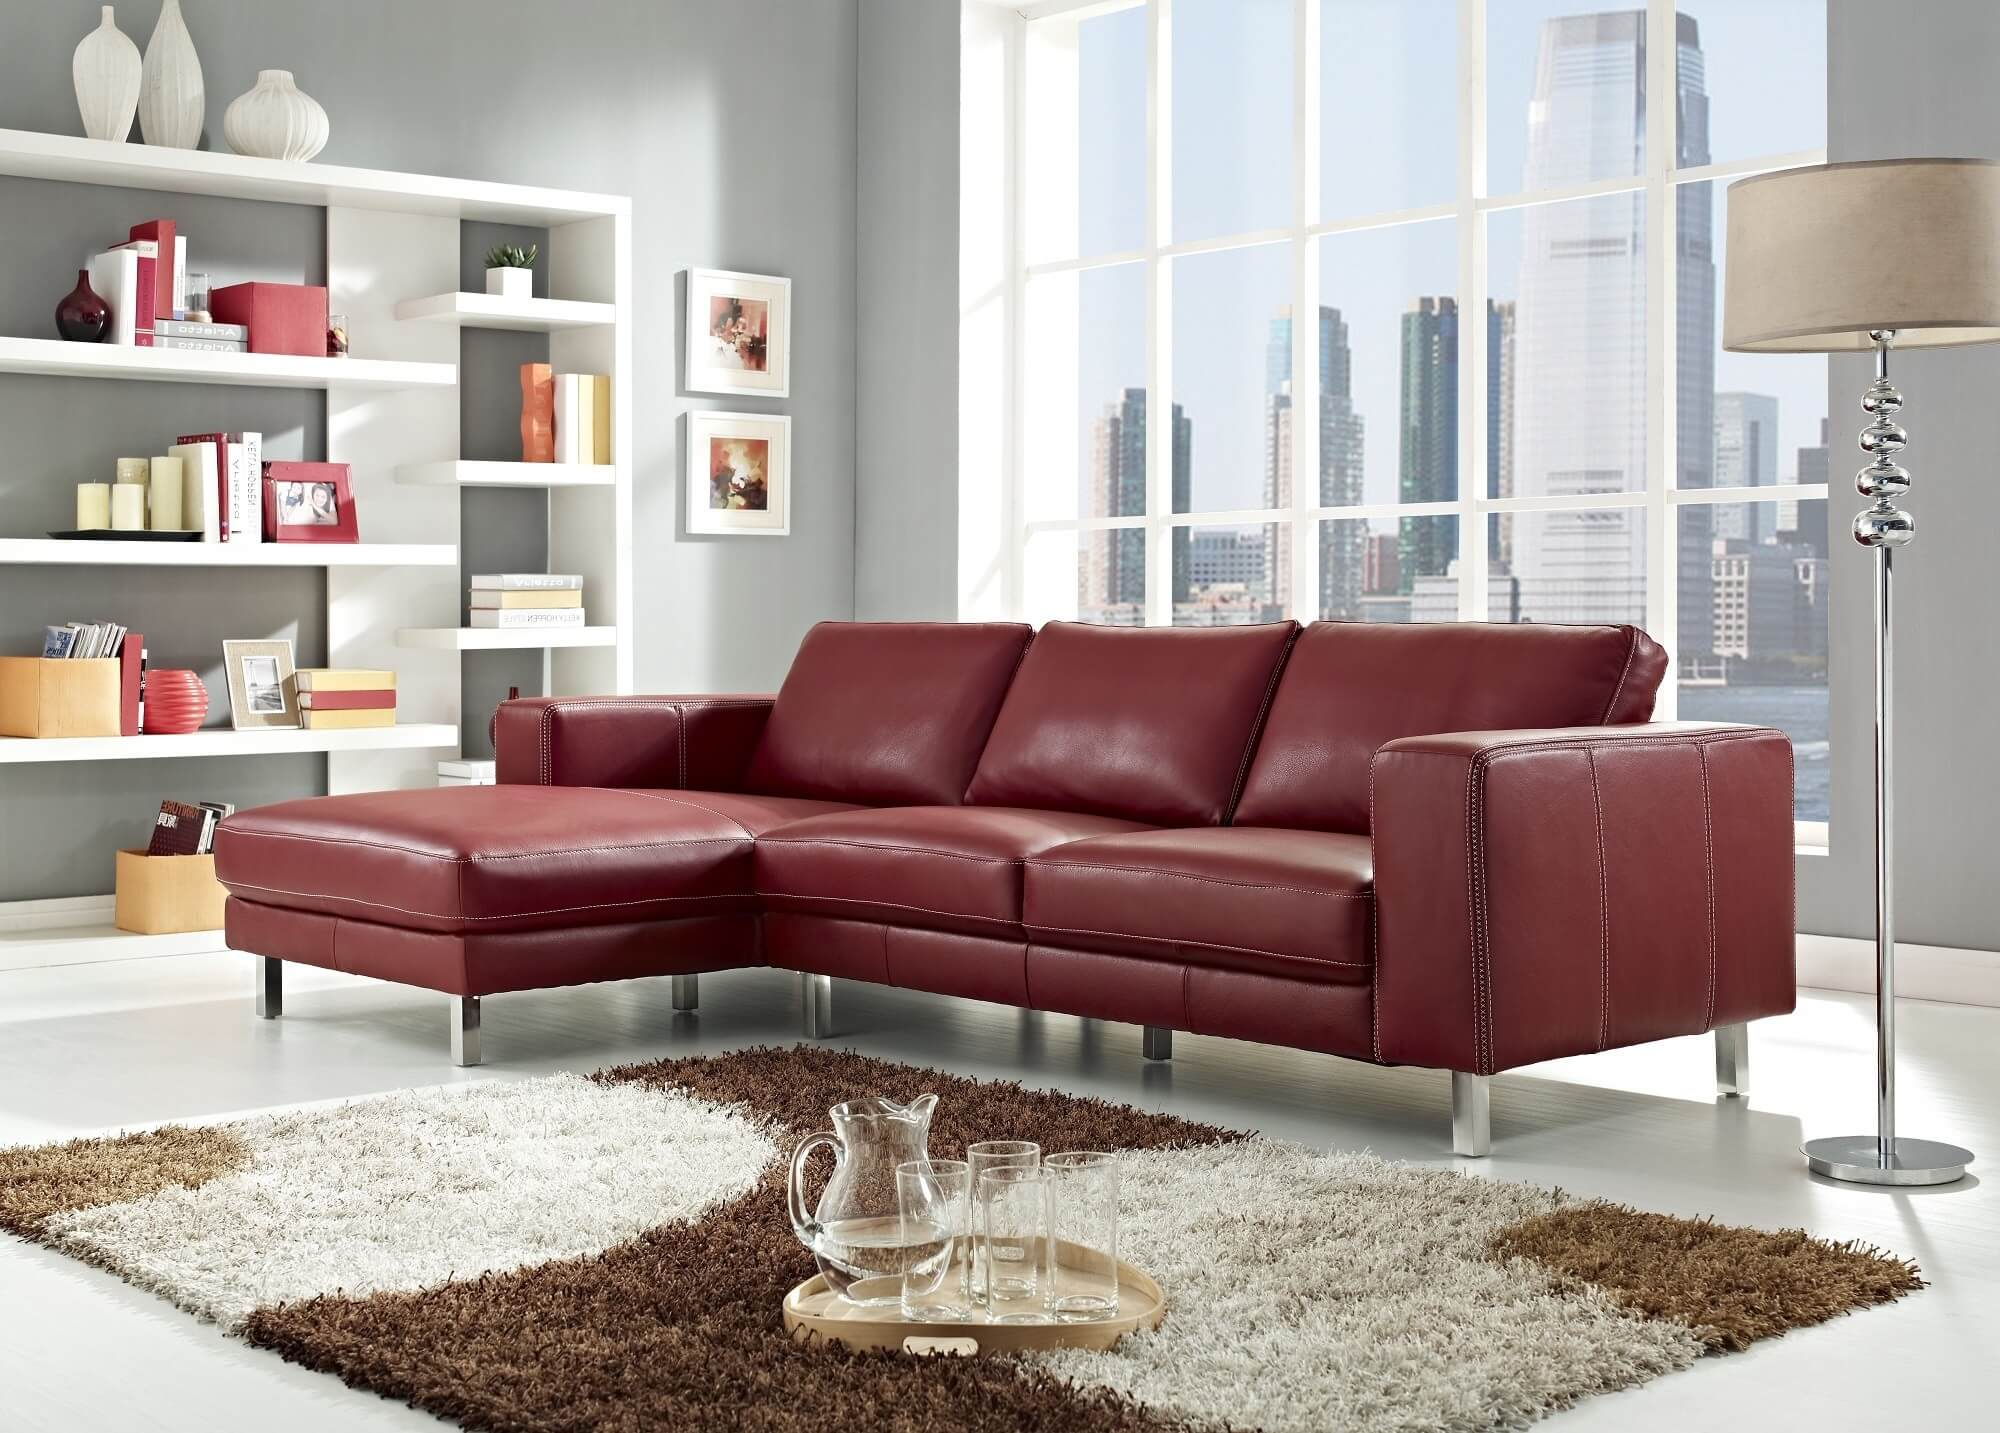 Small Sofas Under $500 18 Stylish Modern Red Sectional Sofas